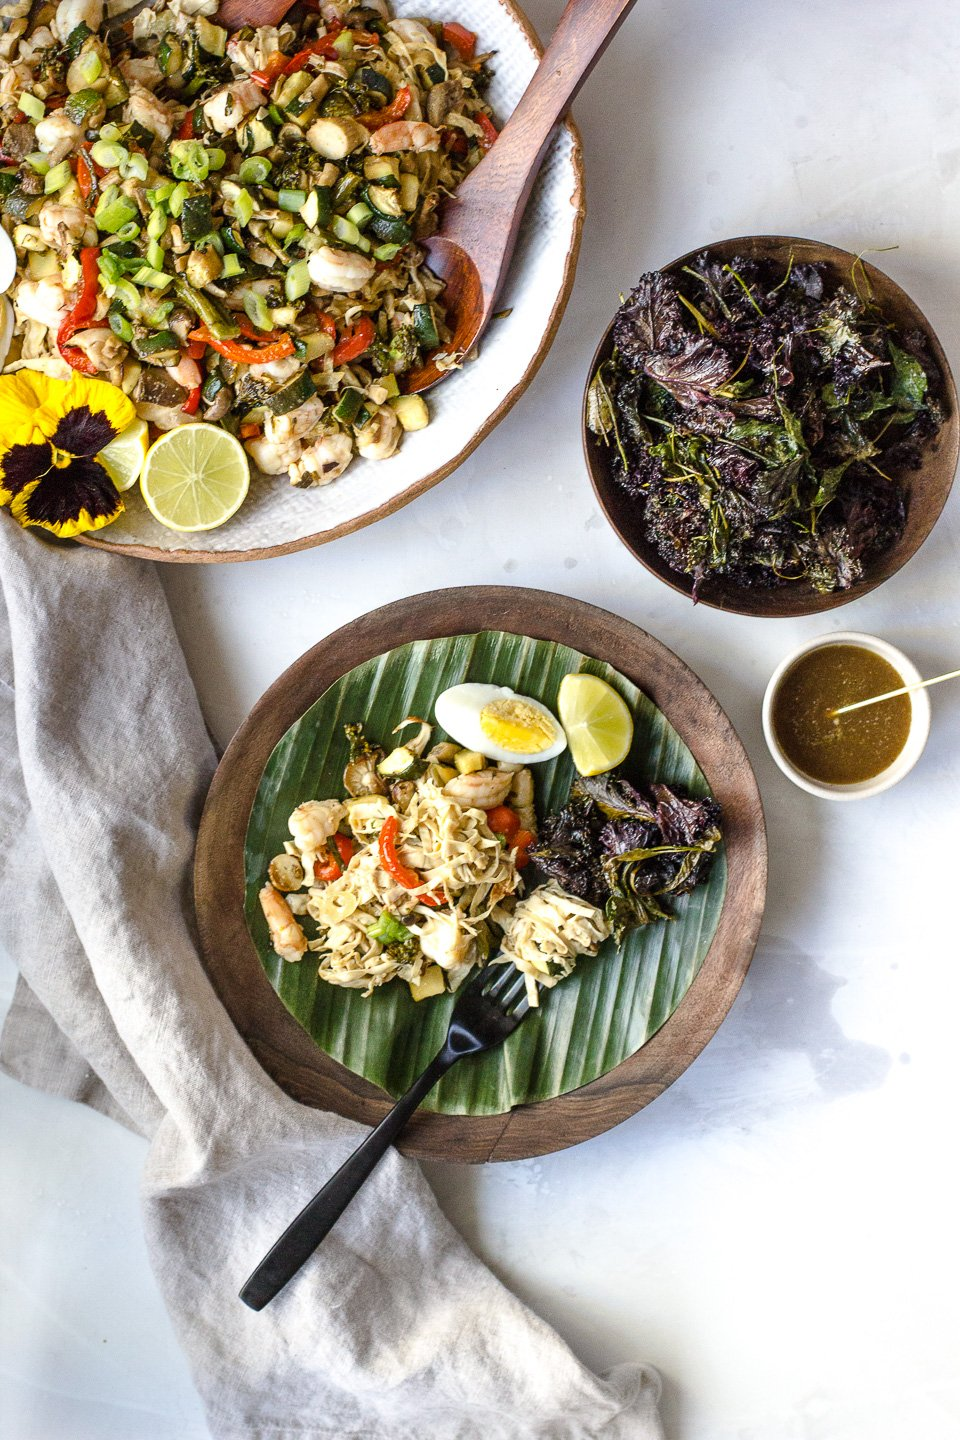 Yuba Noodles Pancit with Adobo Kale Chips